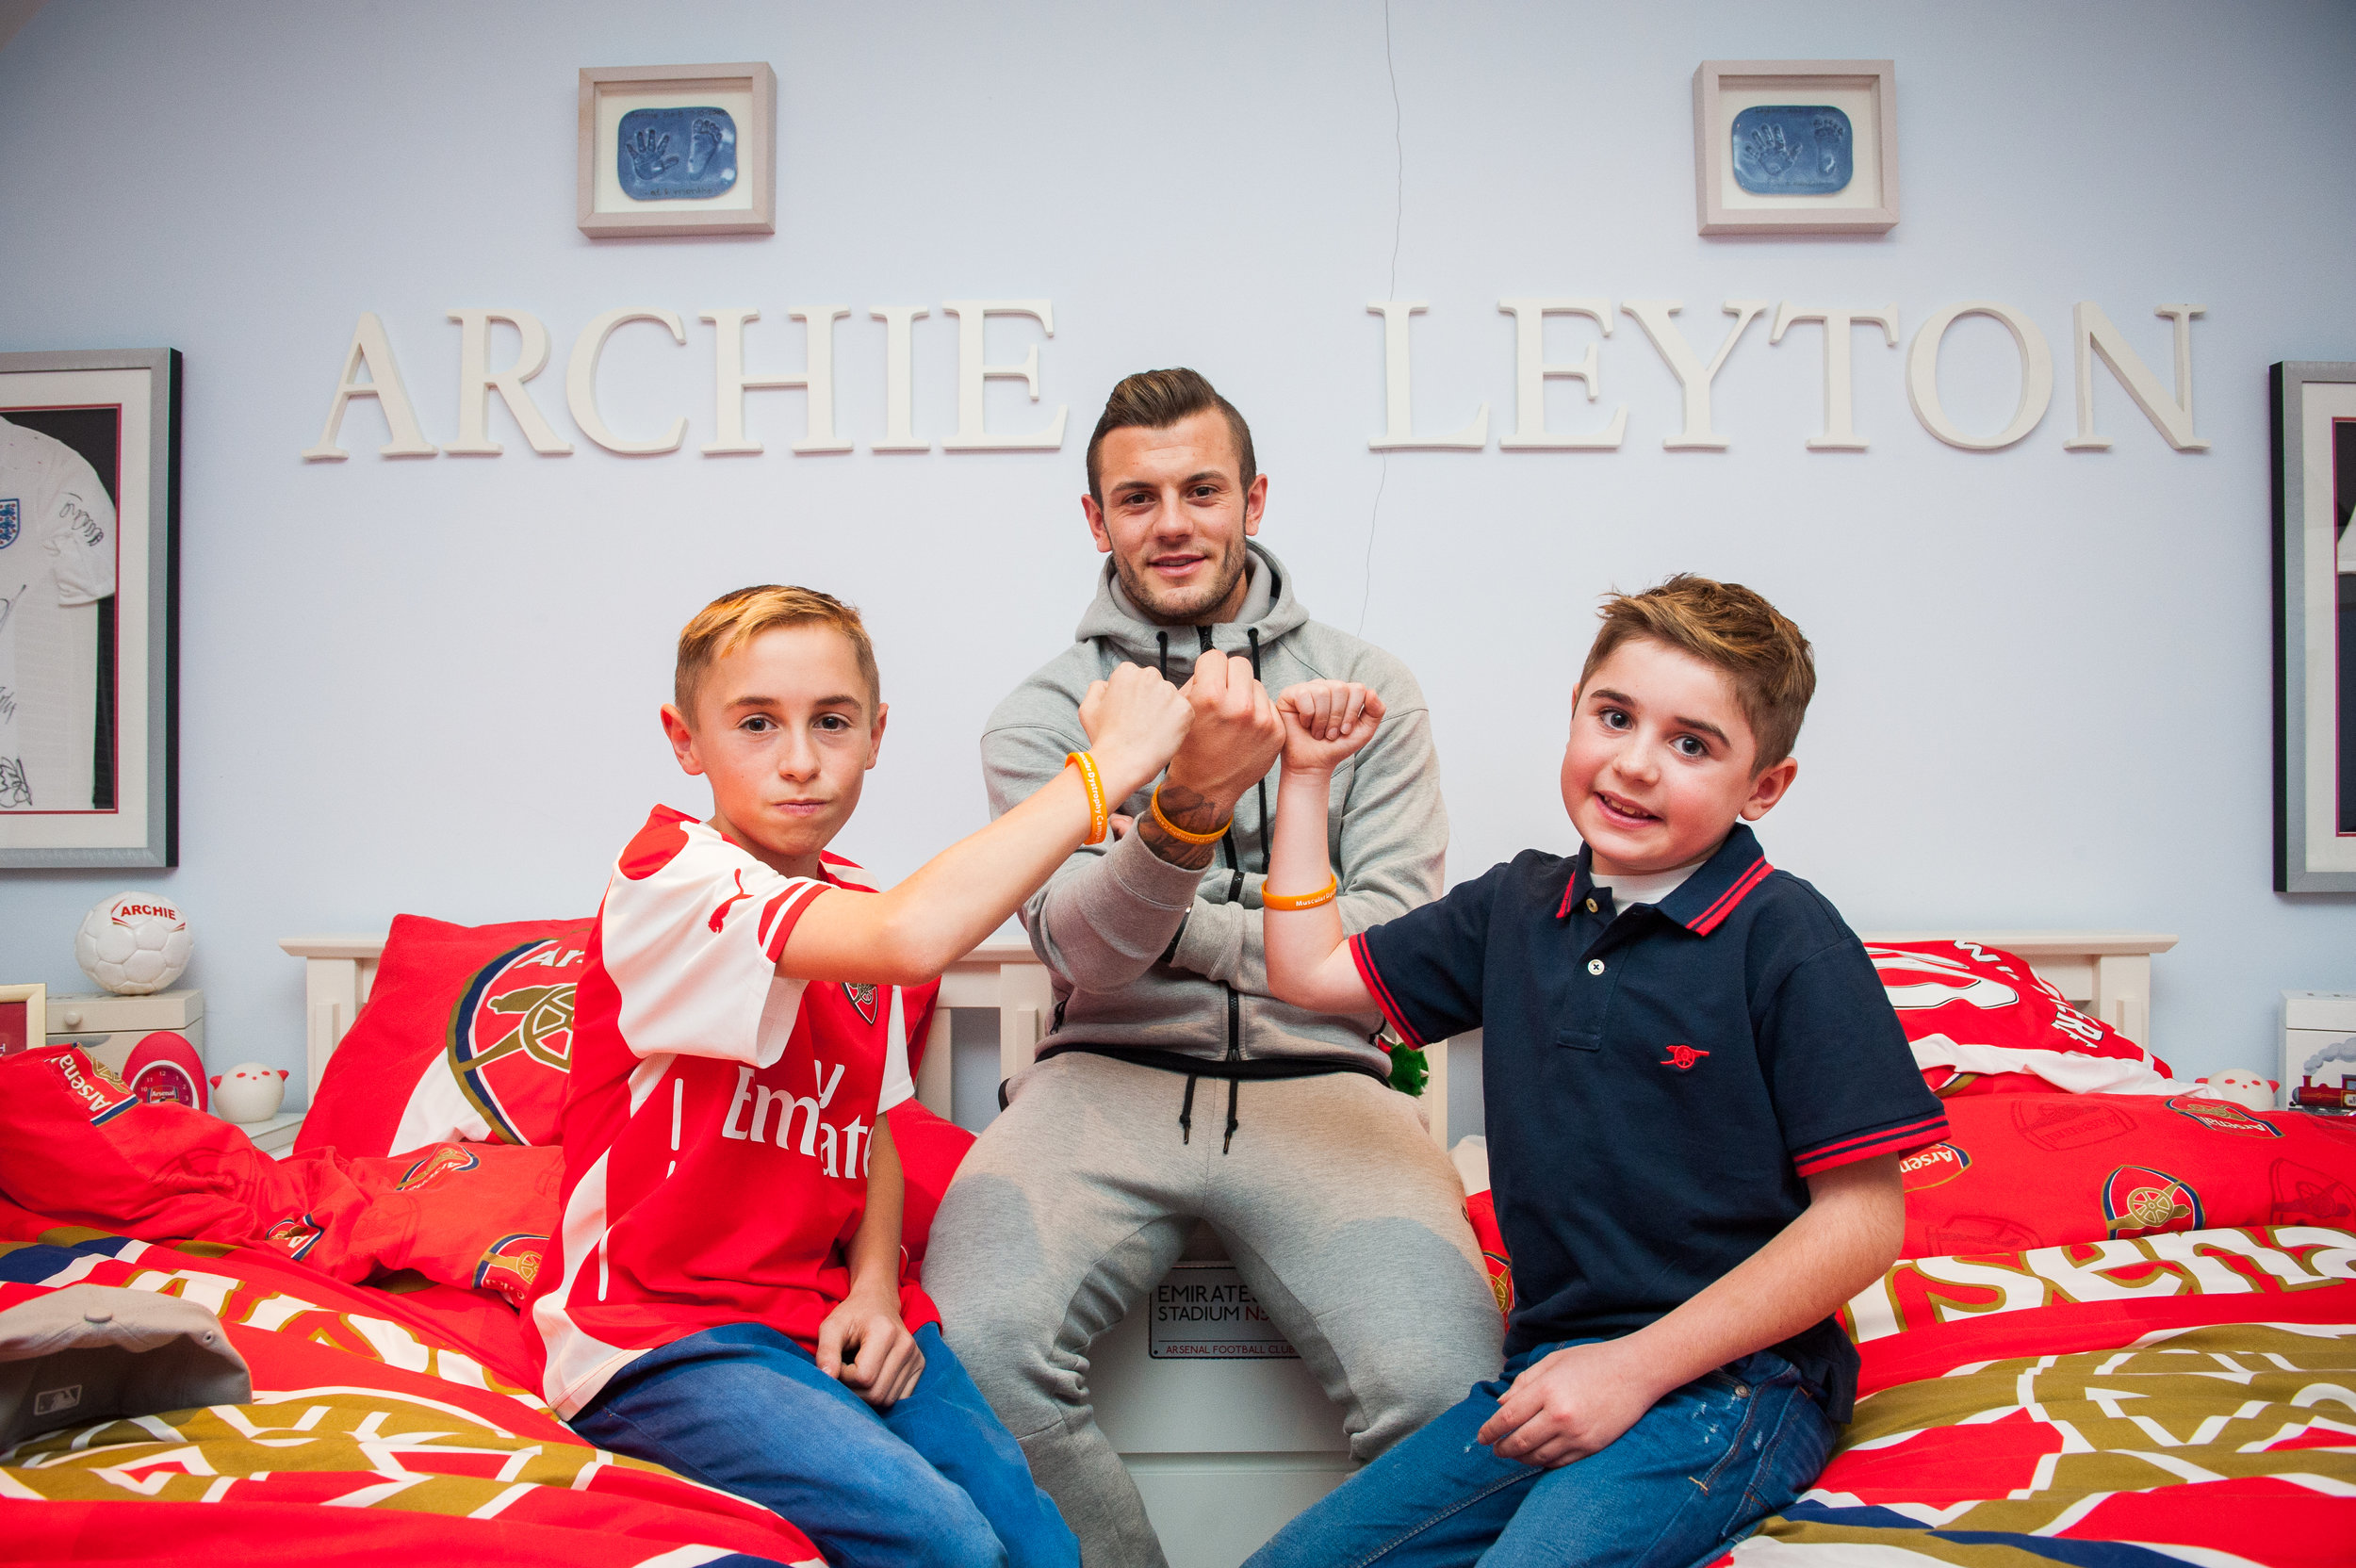 Jack Wilshere with Archie (right) & Leyton Hill (left) at their family home. Archie has Duchenne Muscular Dystrophy and his parents Louisa and Gary Hill are passionate campaigners.